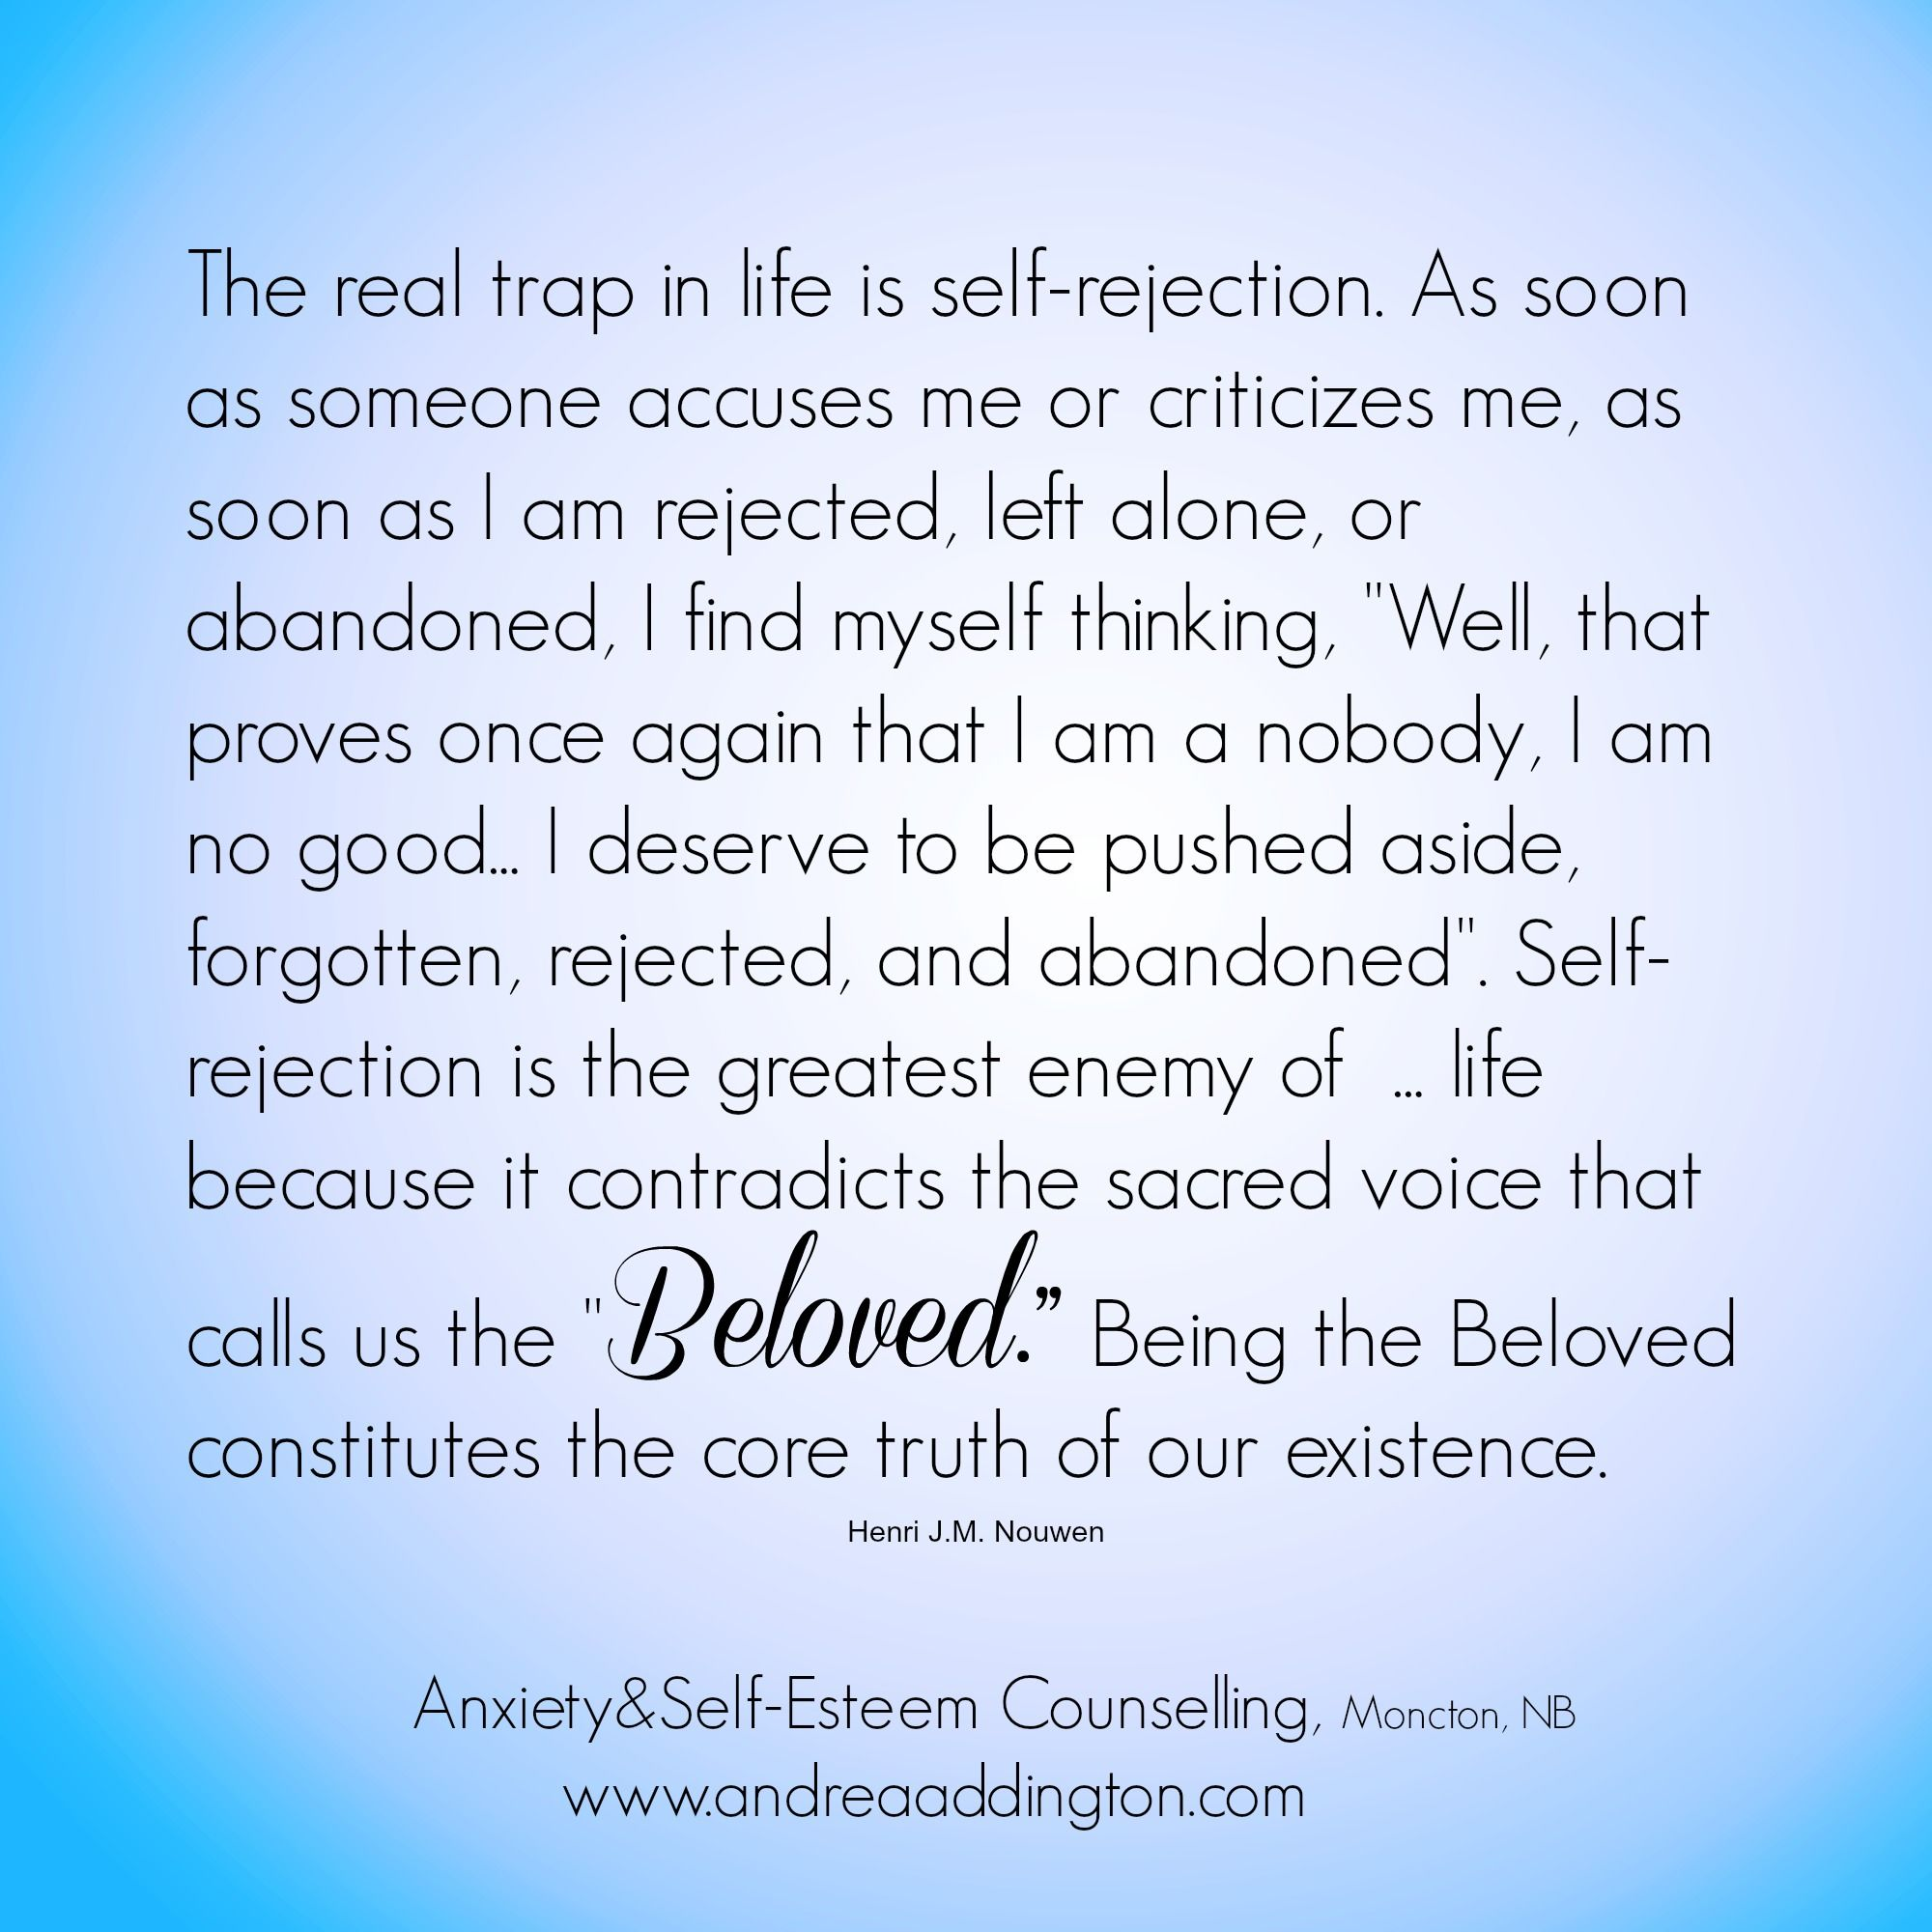 You are the BELOVED Henri J.M. Nouwen quote | Self ...